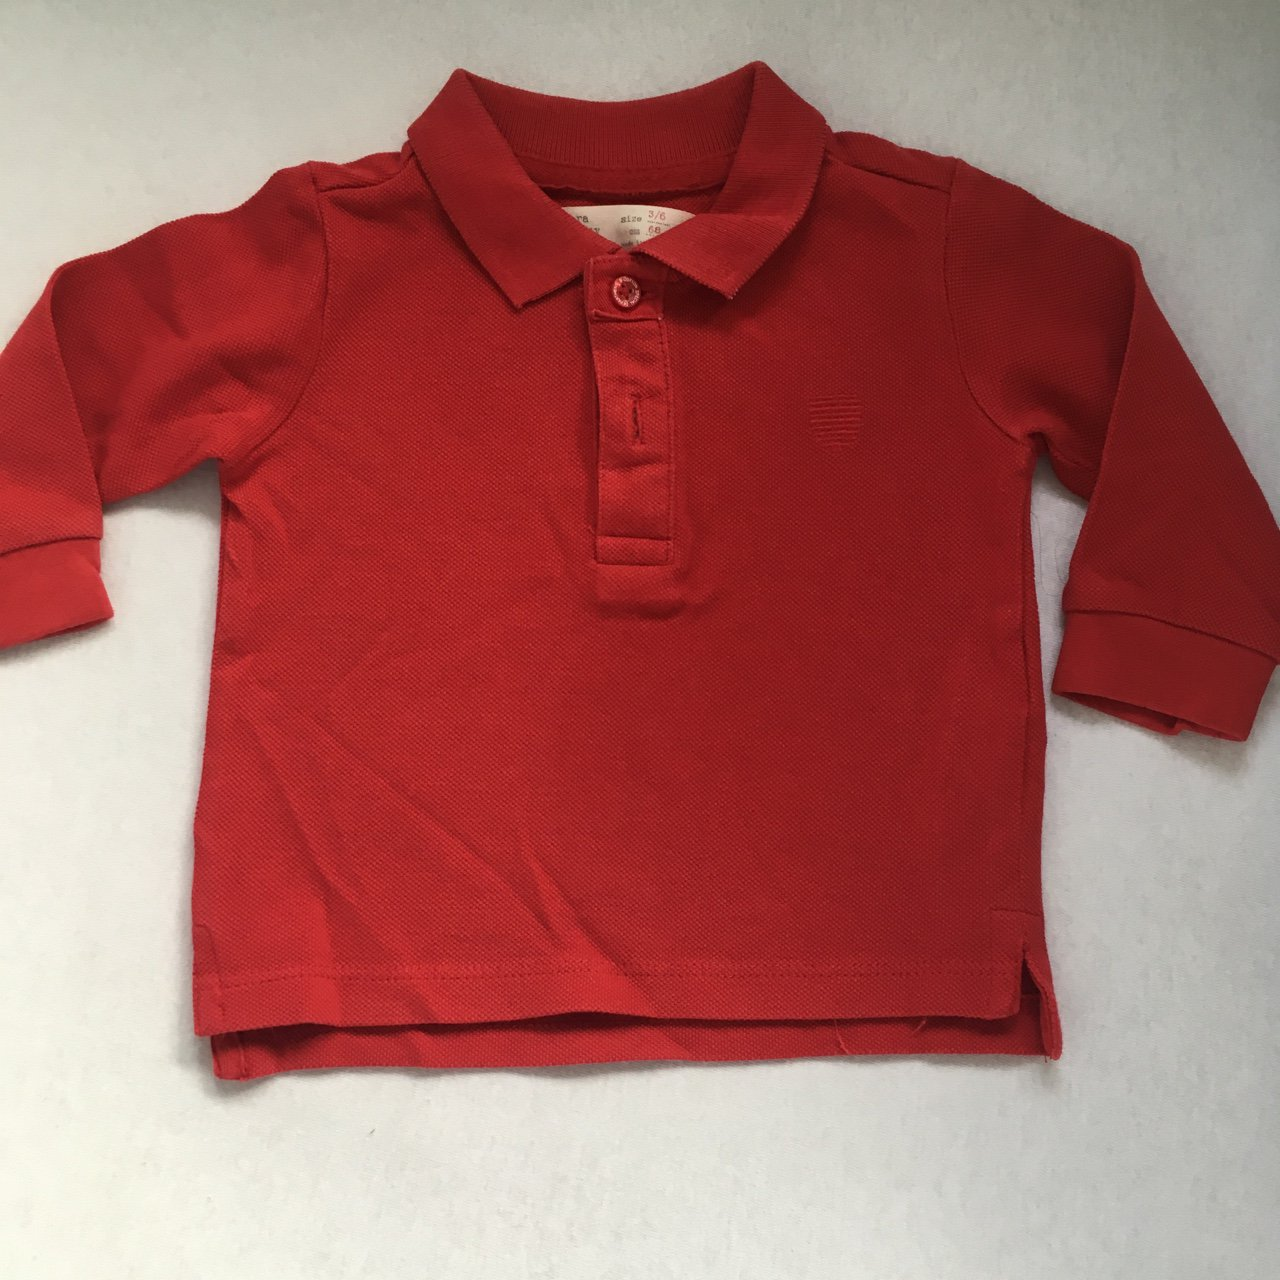 46a5ae385 Zara Baby Boy Polo Shirt | Top Mode Depot